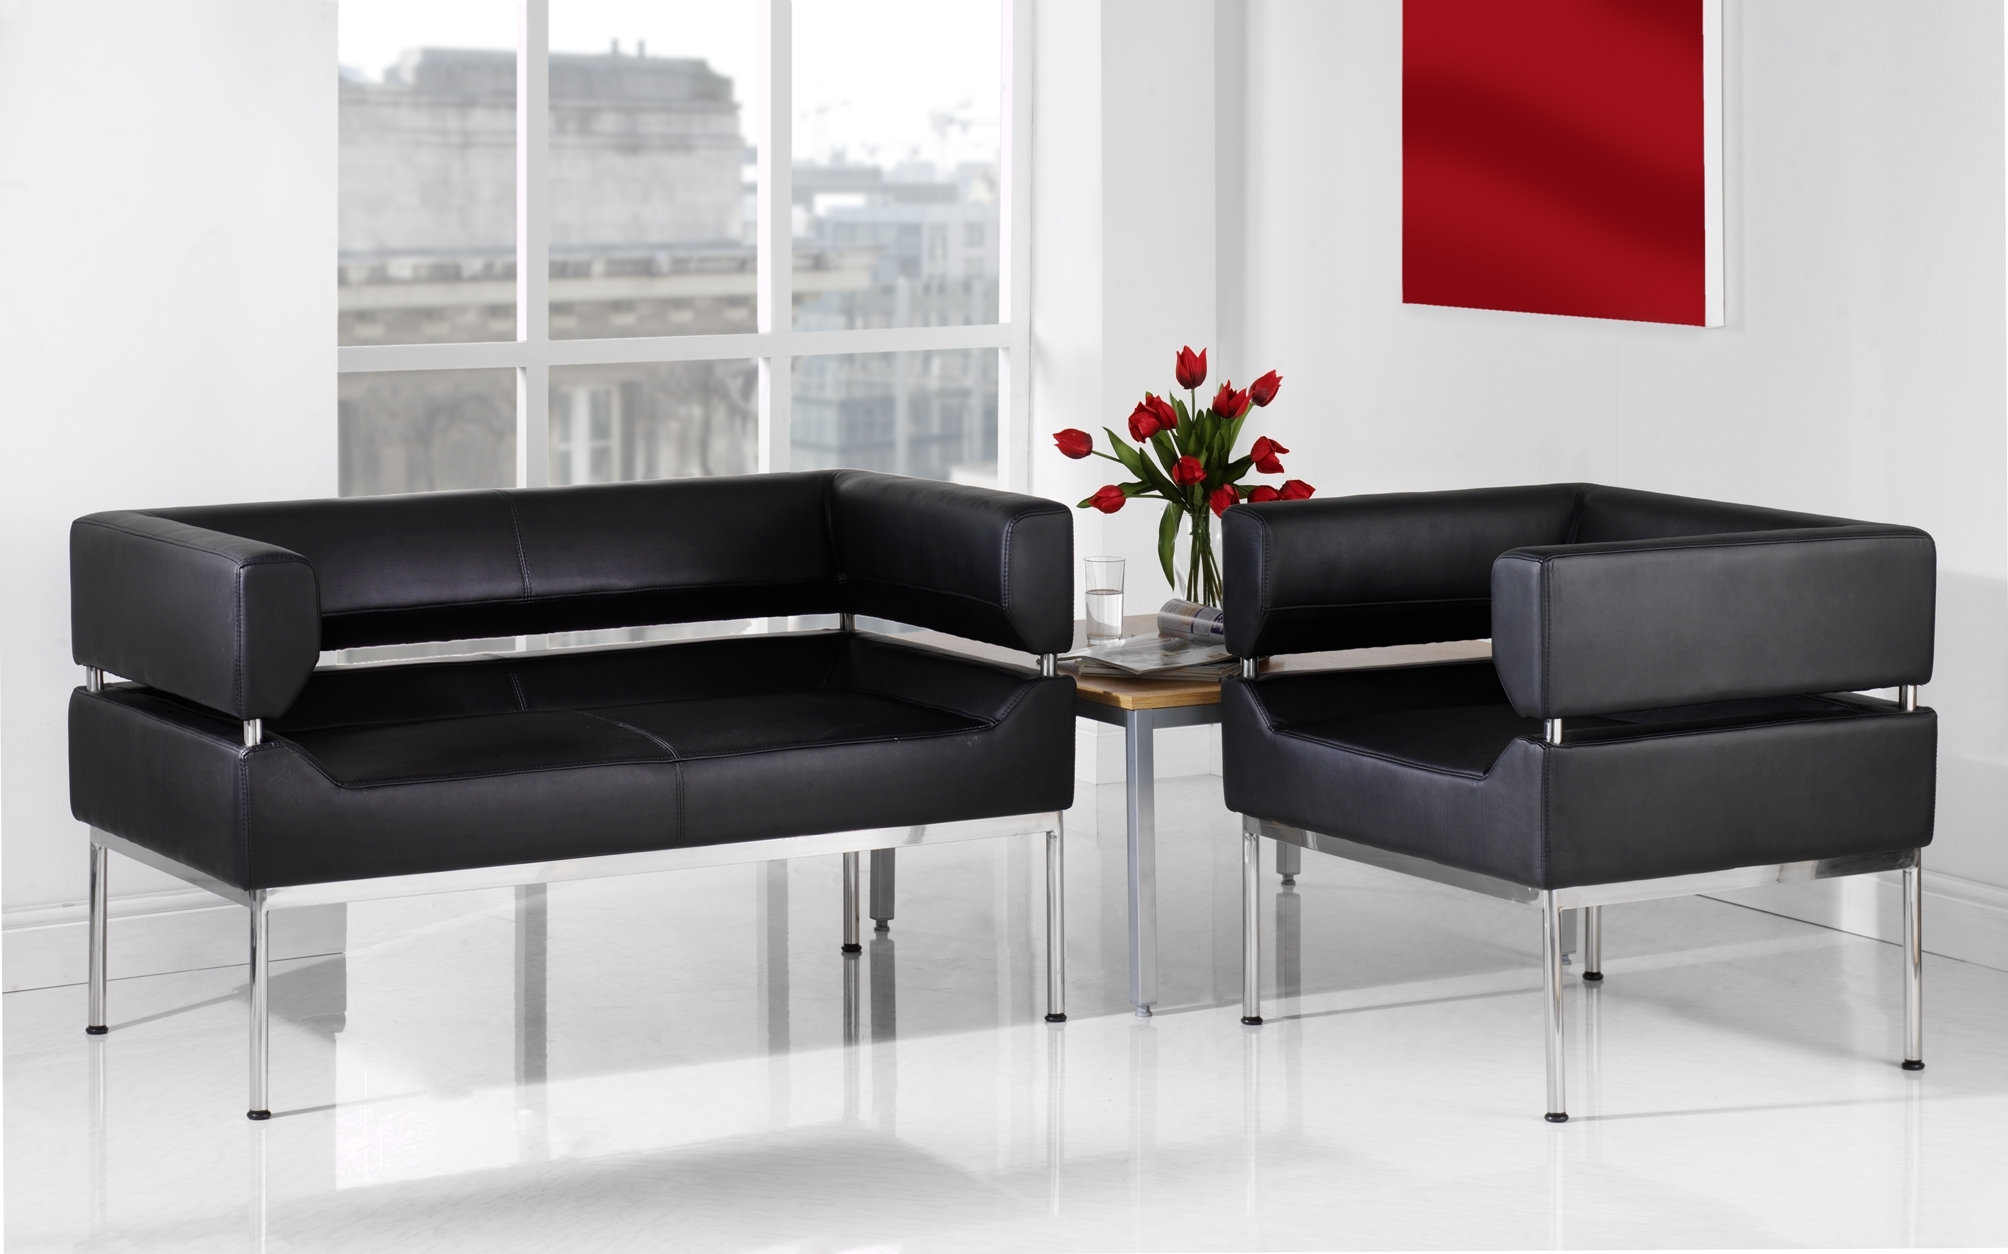 Newest Beautiful Sofas And Chairs 97 On Office Sofa Ideas With Sofas And With Regard To Office Sofas (Gallery 15 of 20)